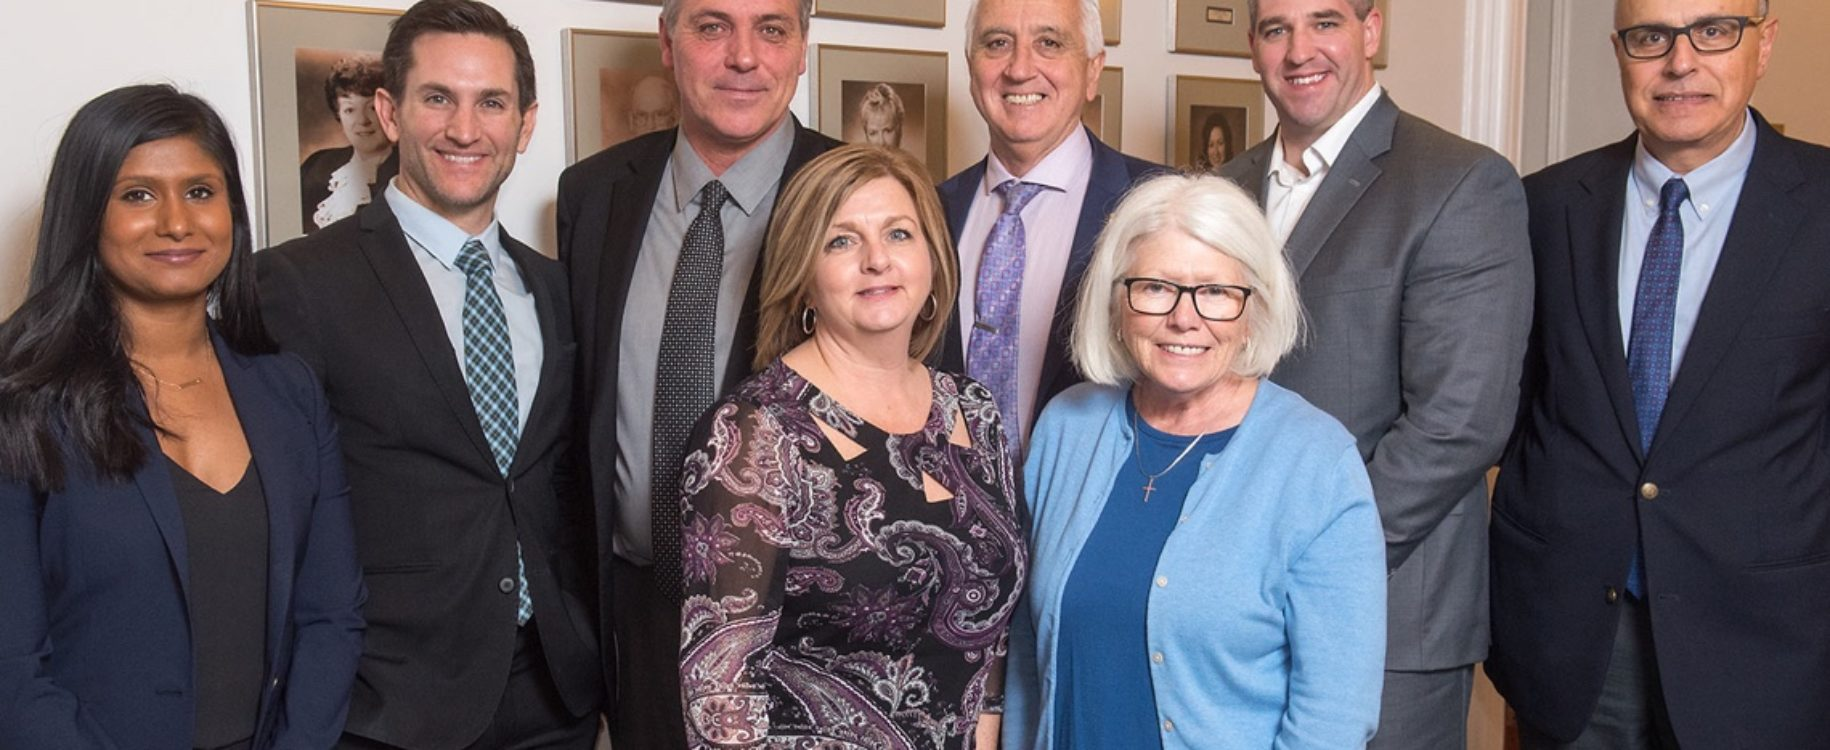 Western Hospital using innovative physician care approach to support patients, community